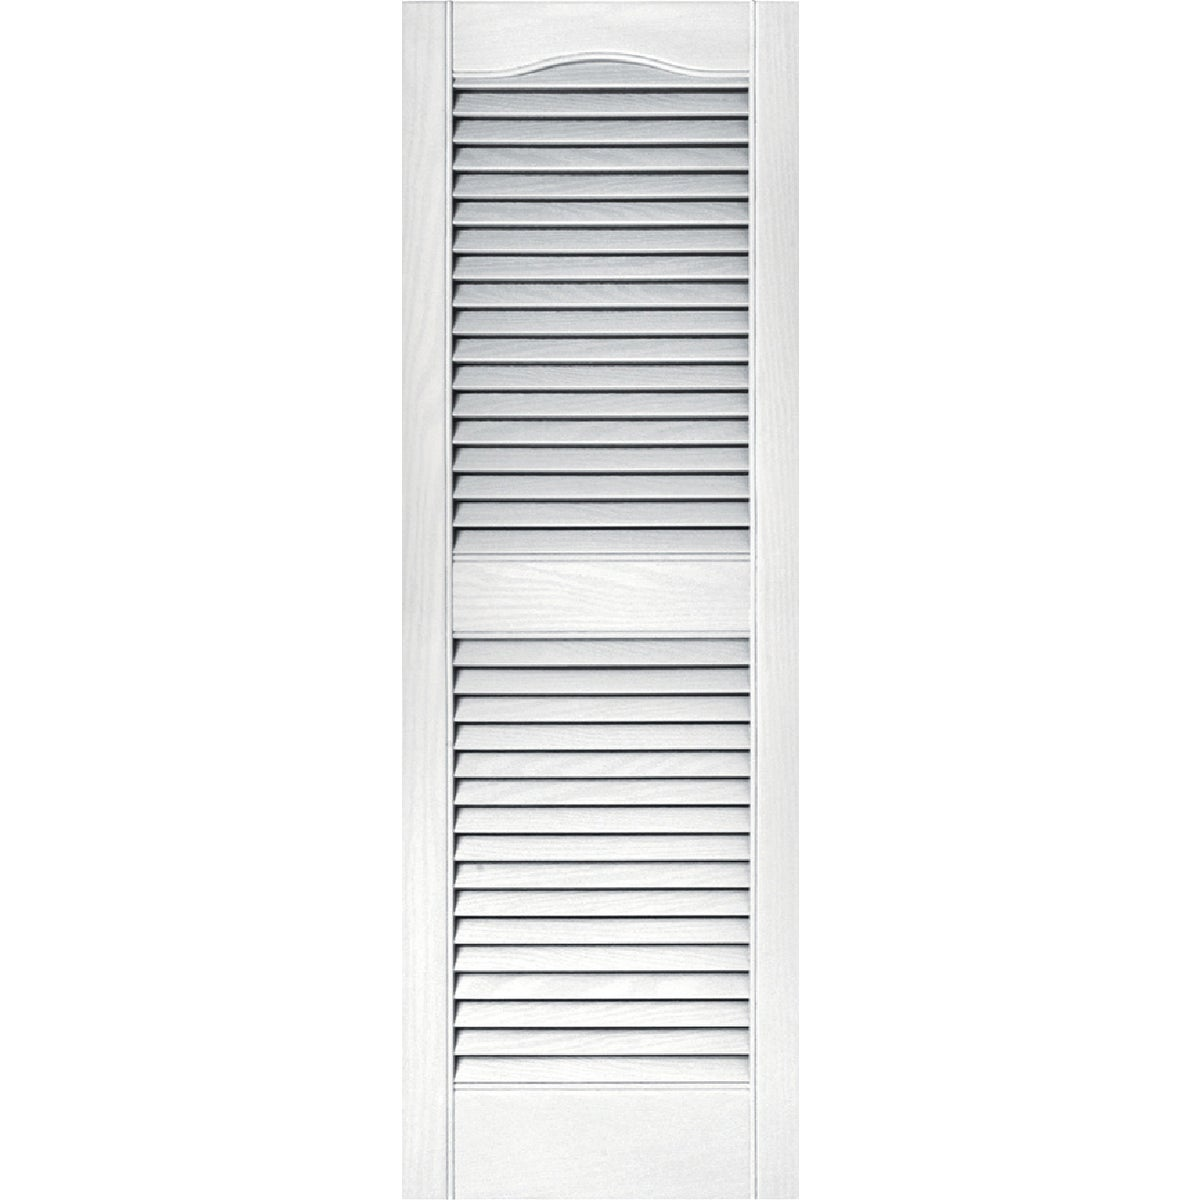 15X43 WHT LOUVER SHUTTER - 020140043001 by The Tapco Group